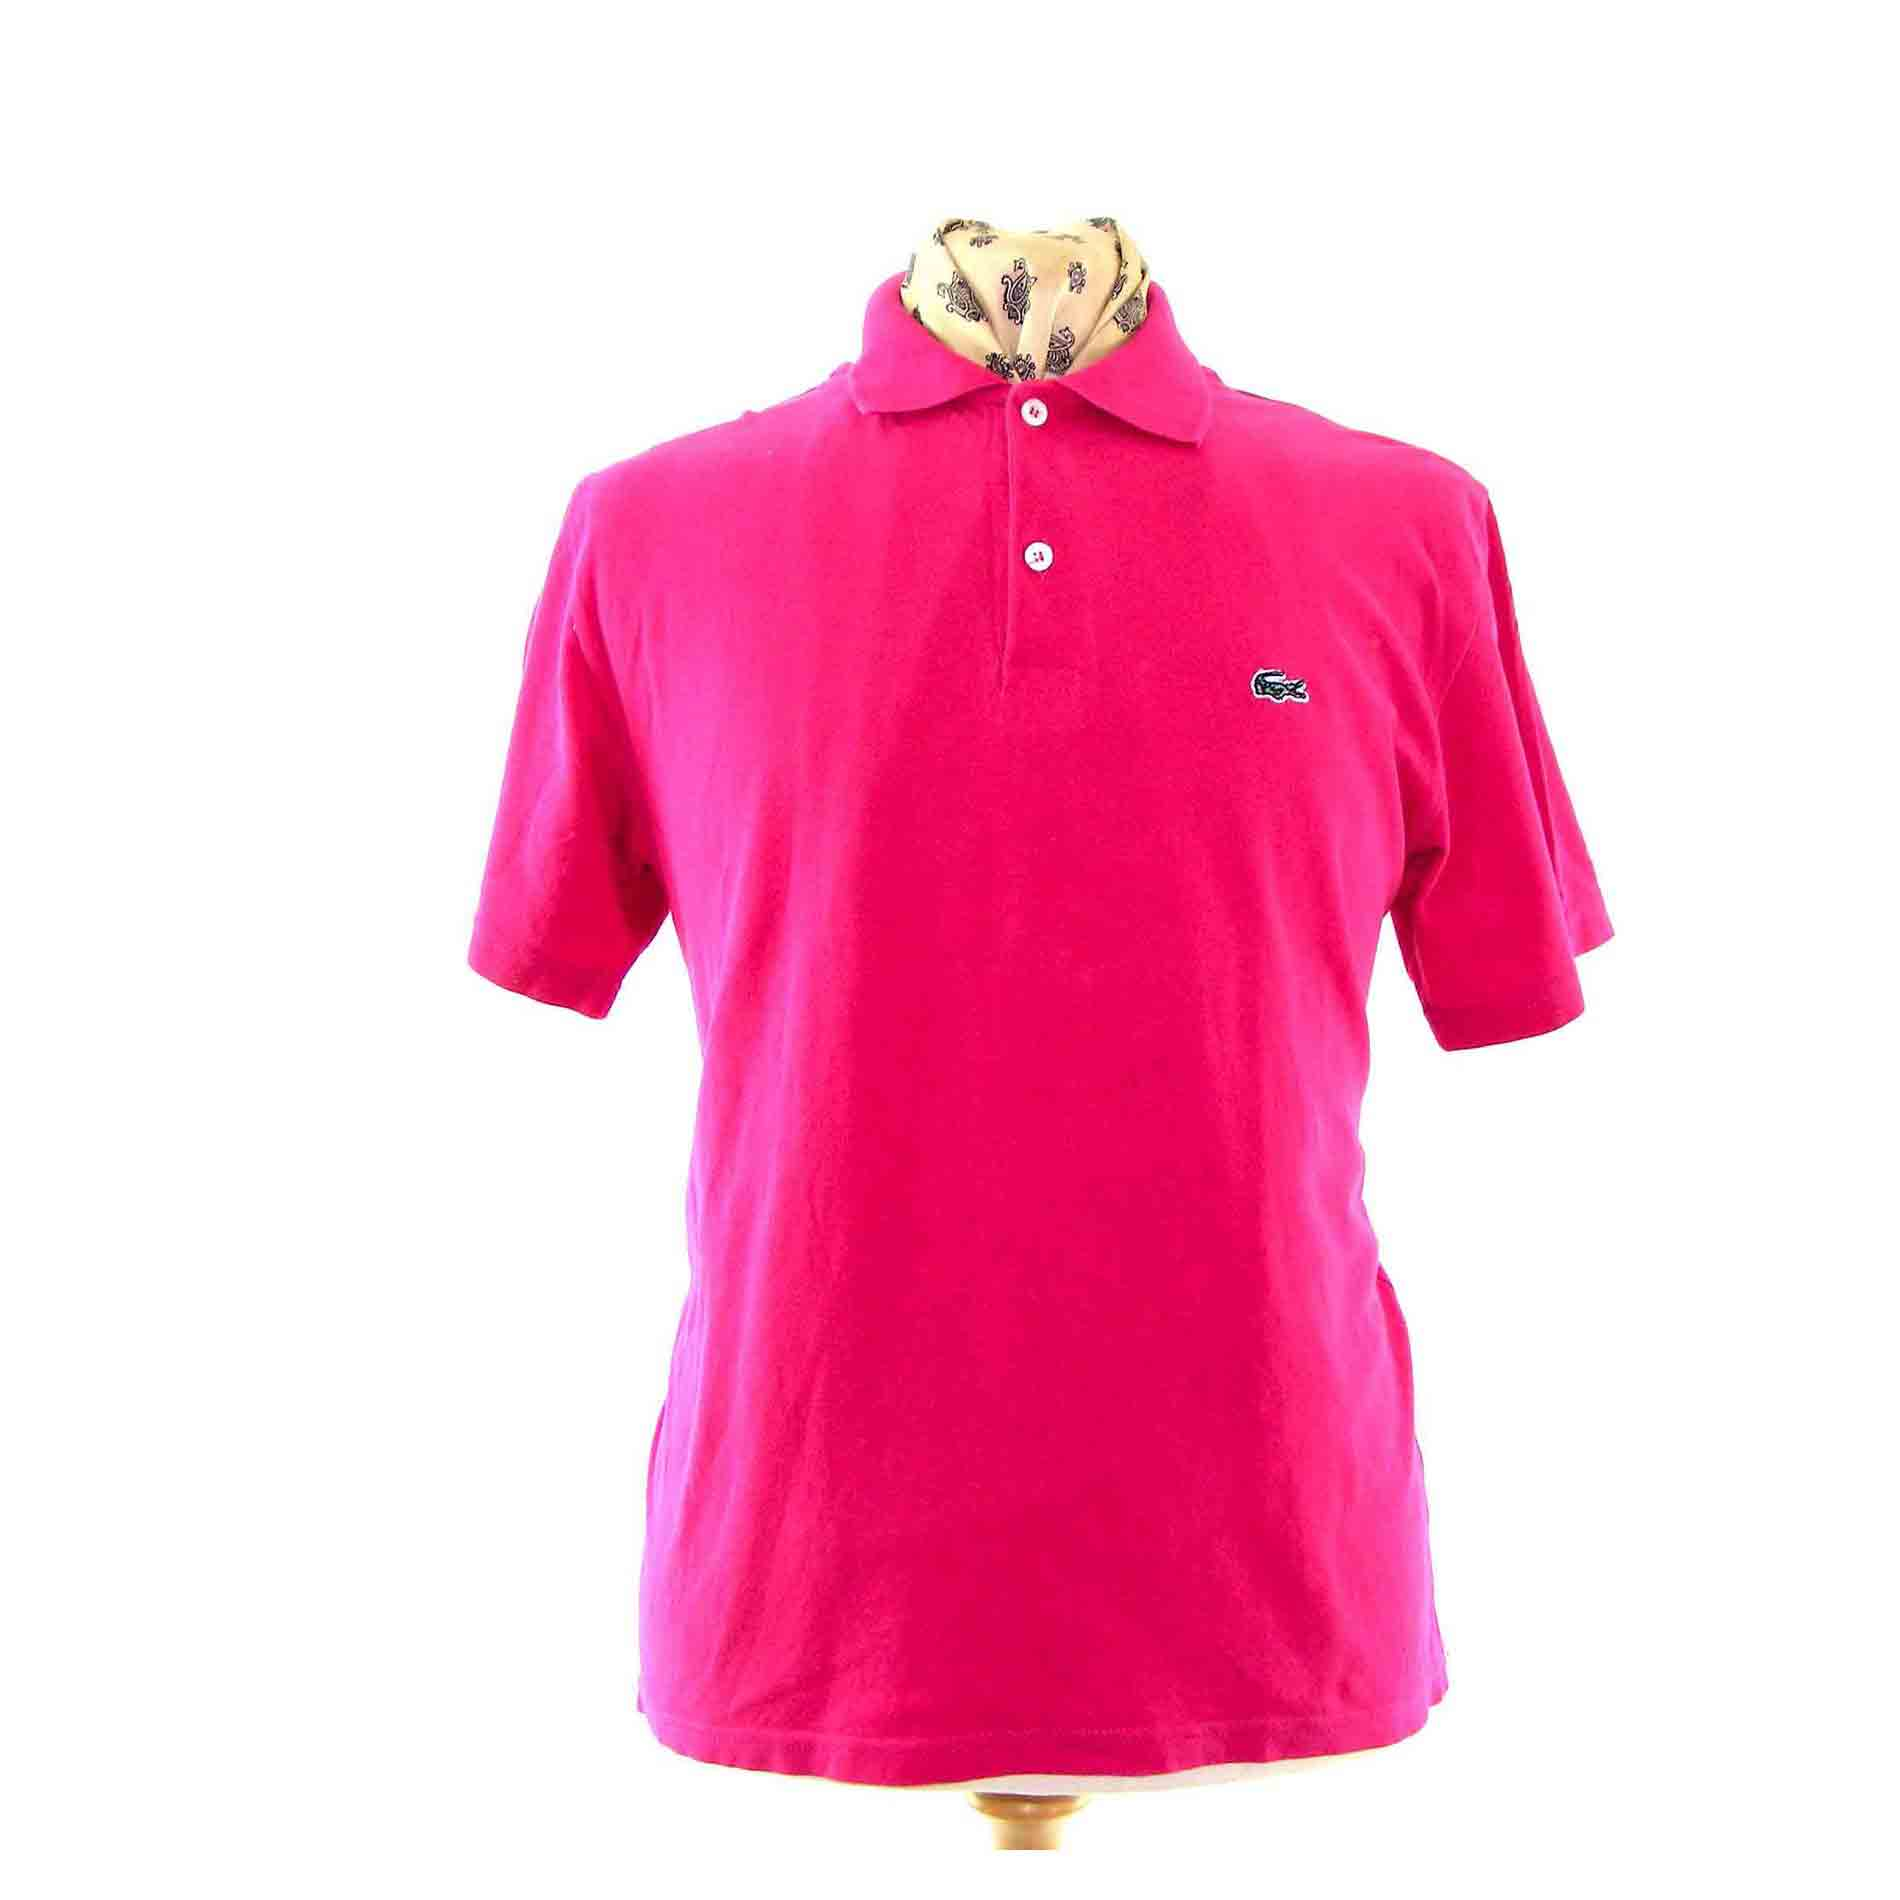 Fluorescent pink polo shirt - Vintage Clothing - Blue 17